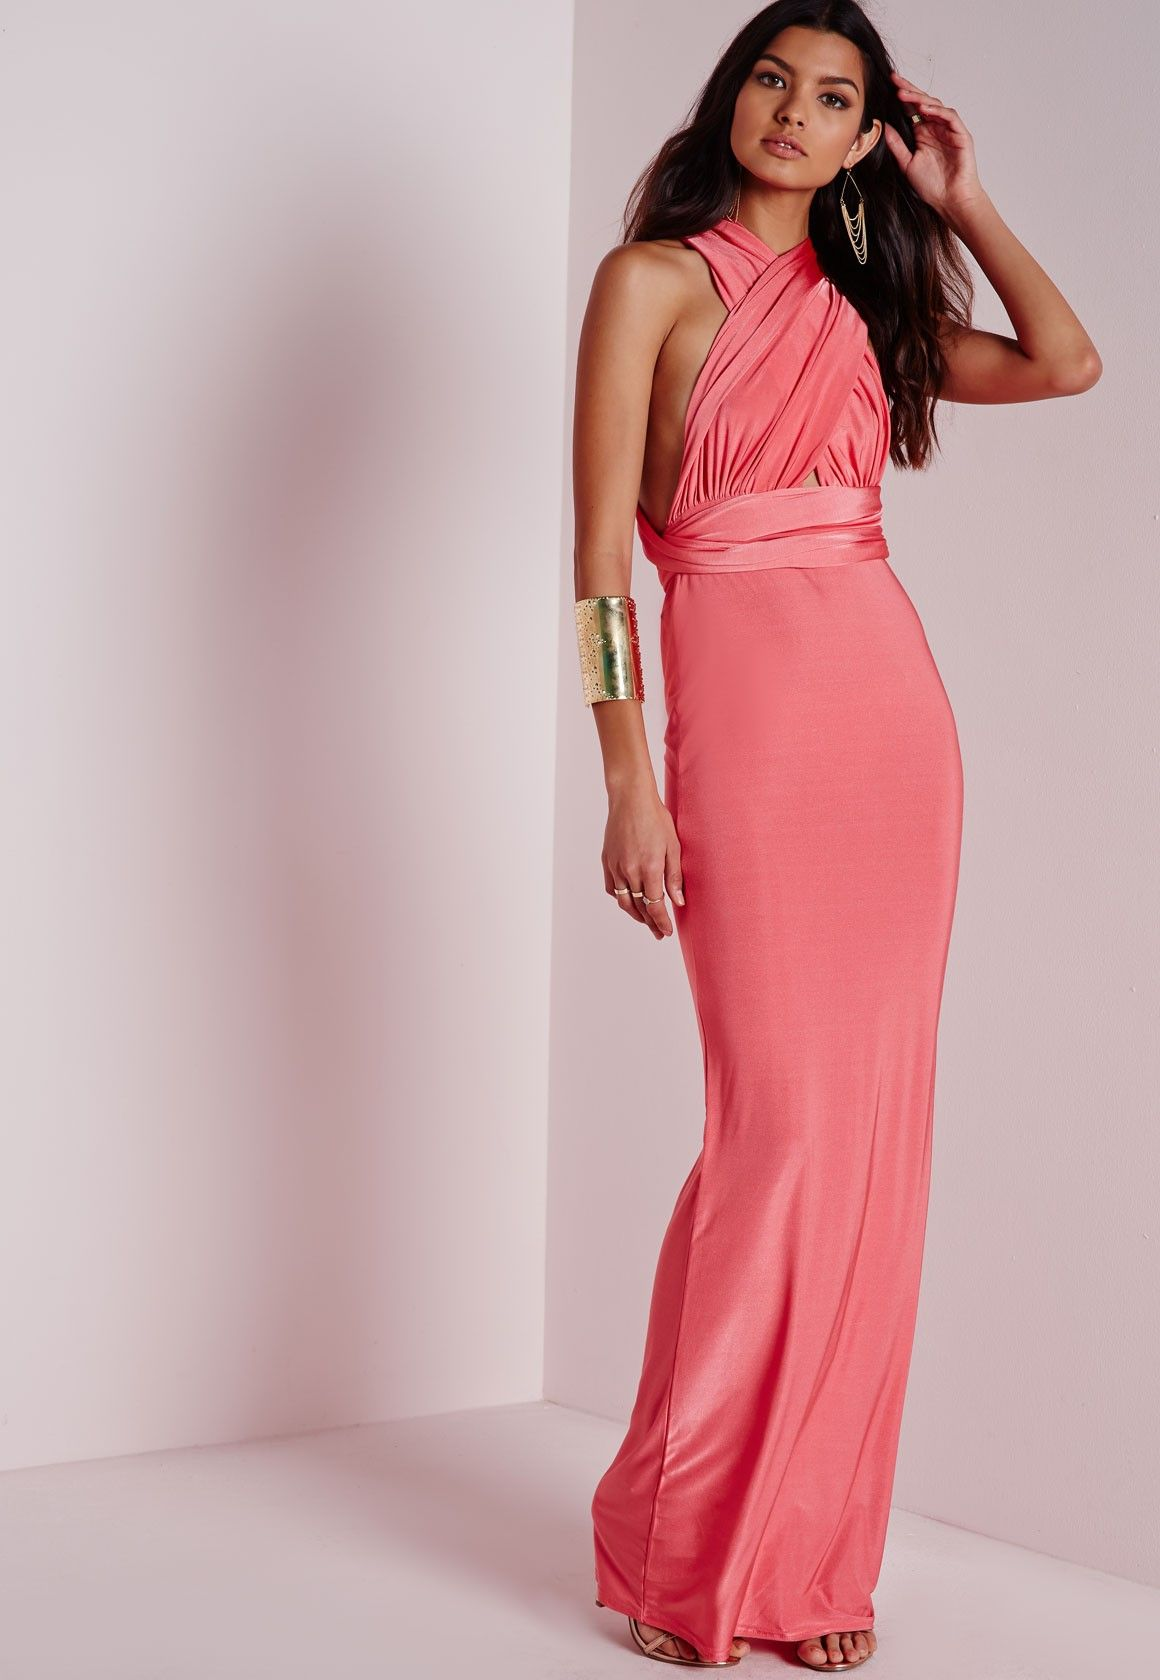 364b15f97b Missguided - Do It Any Way Multiway Maxi Dress Pink